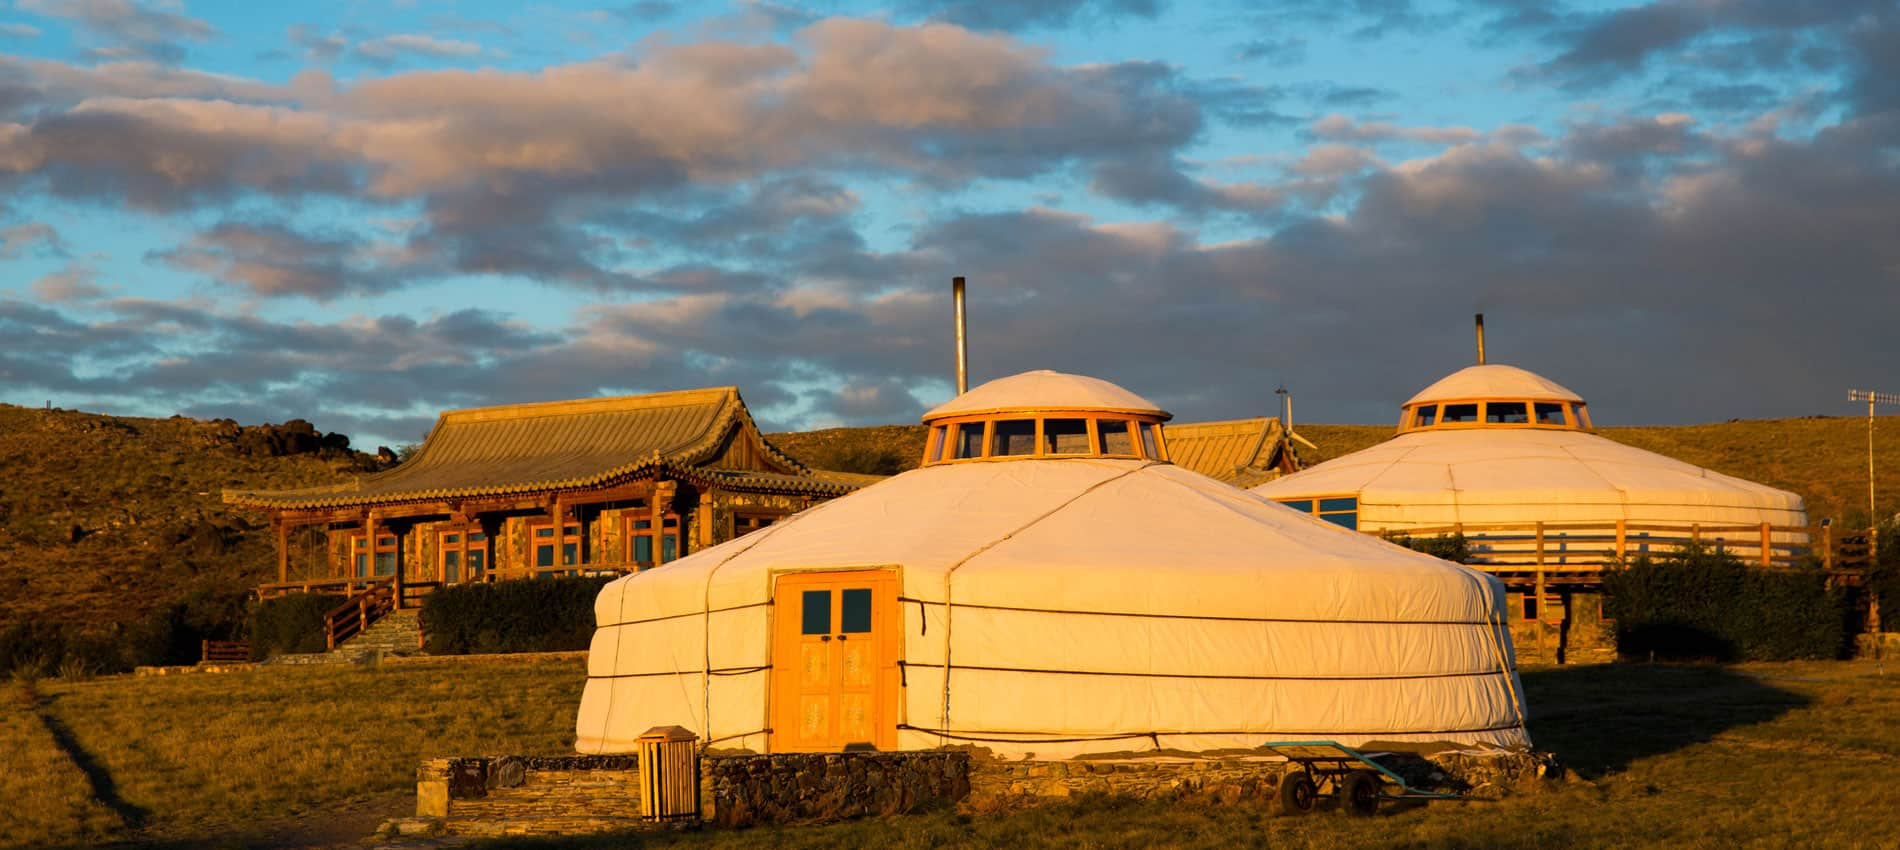 three camel eco lodge, mongolia